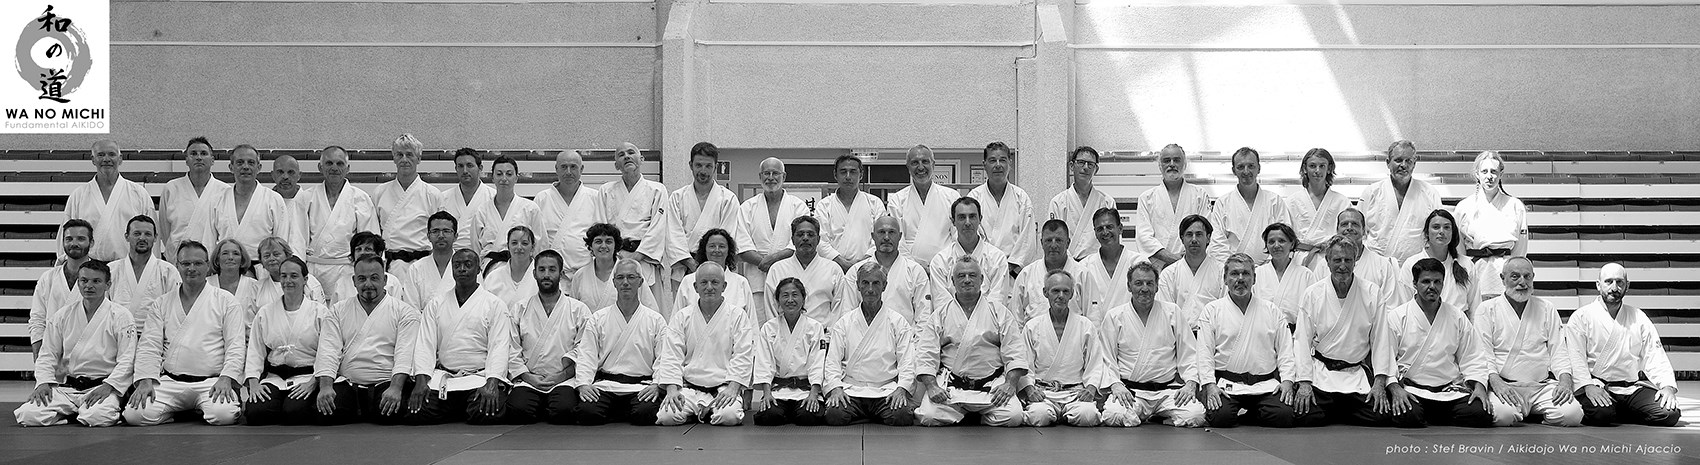 Summer camp 08/2018 - 50 years of aikido - Daniel Toutain